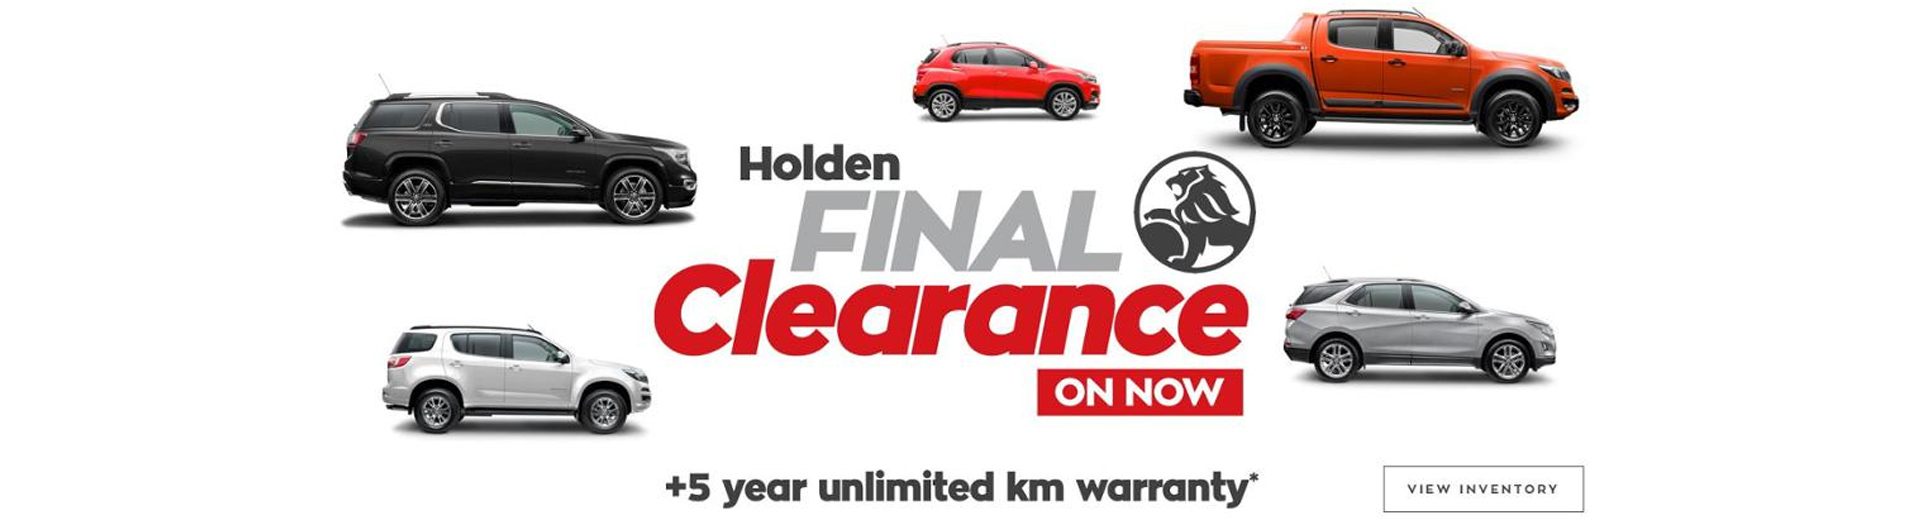 Nowra City Holden Final Clearance